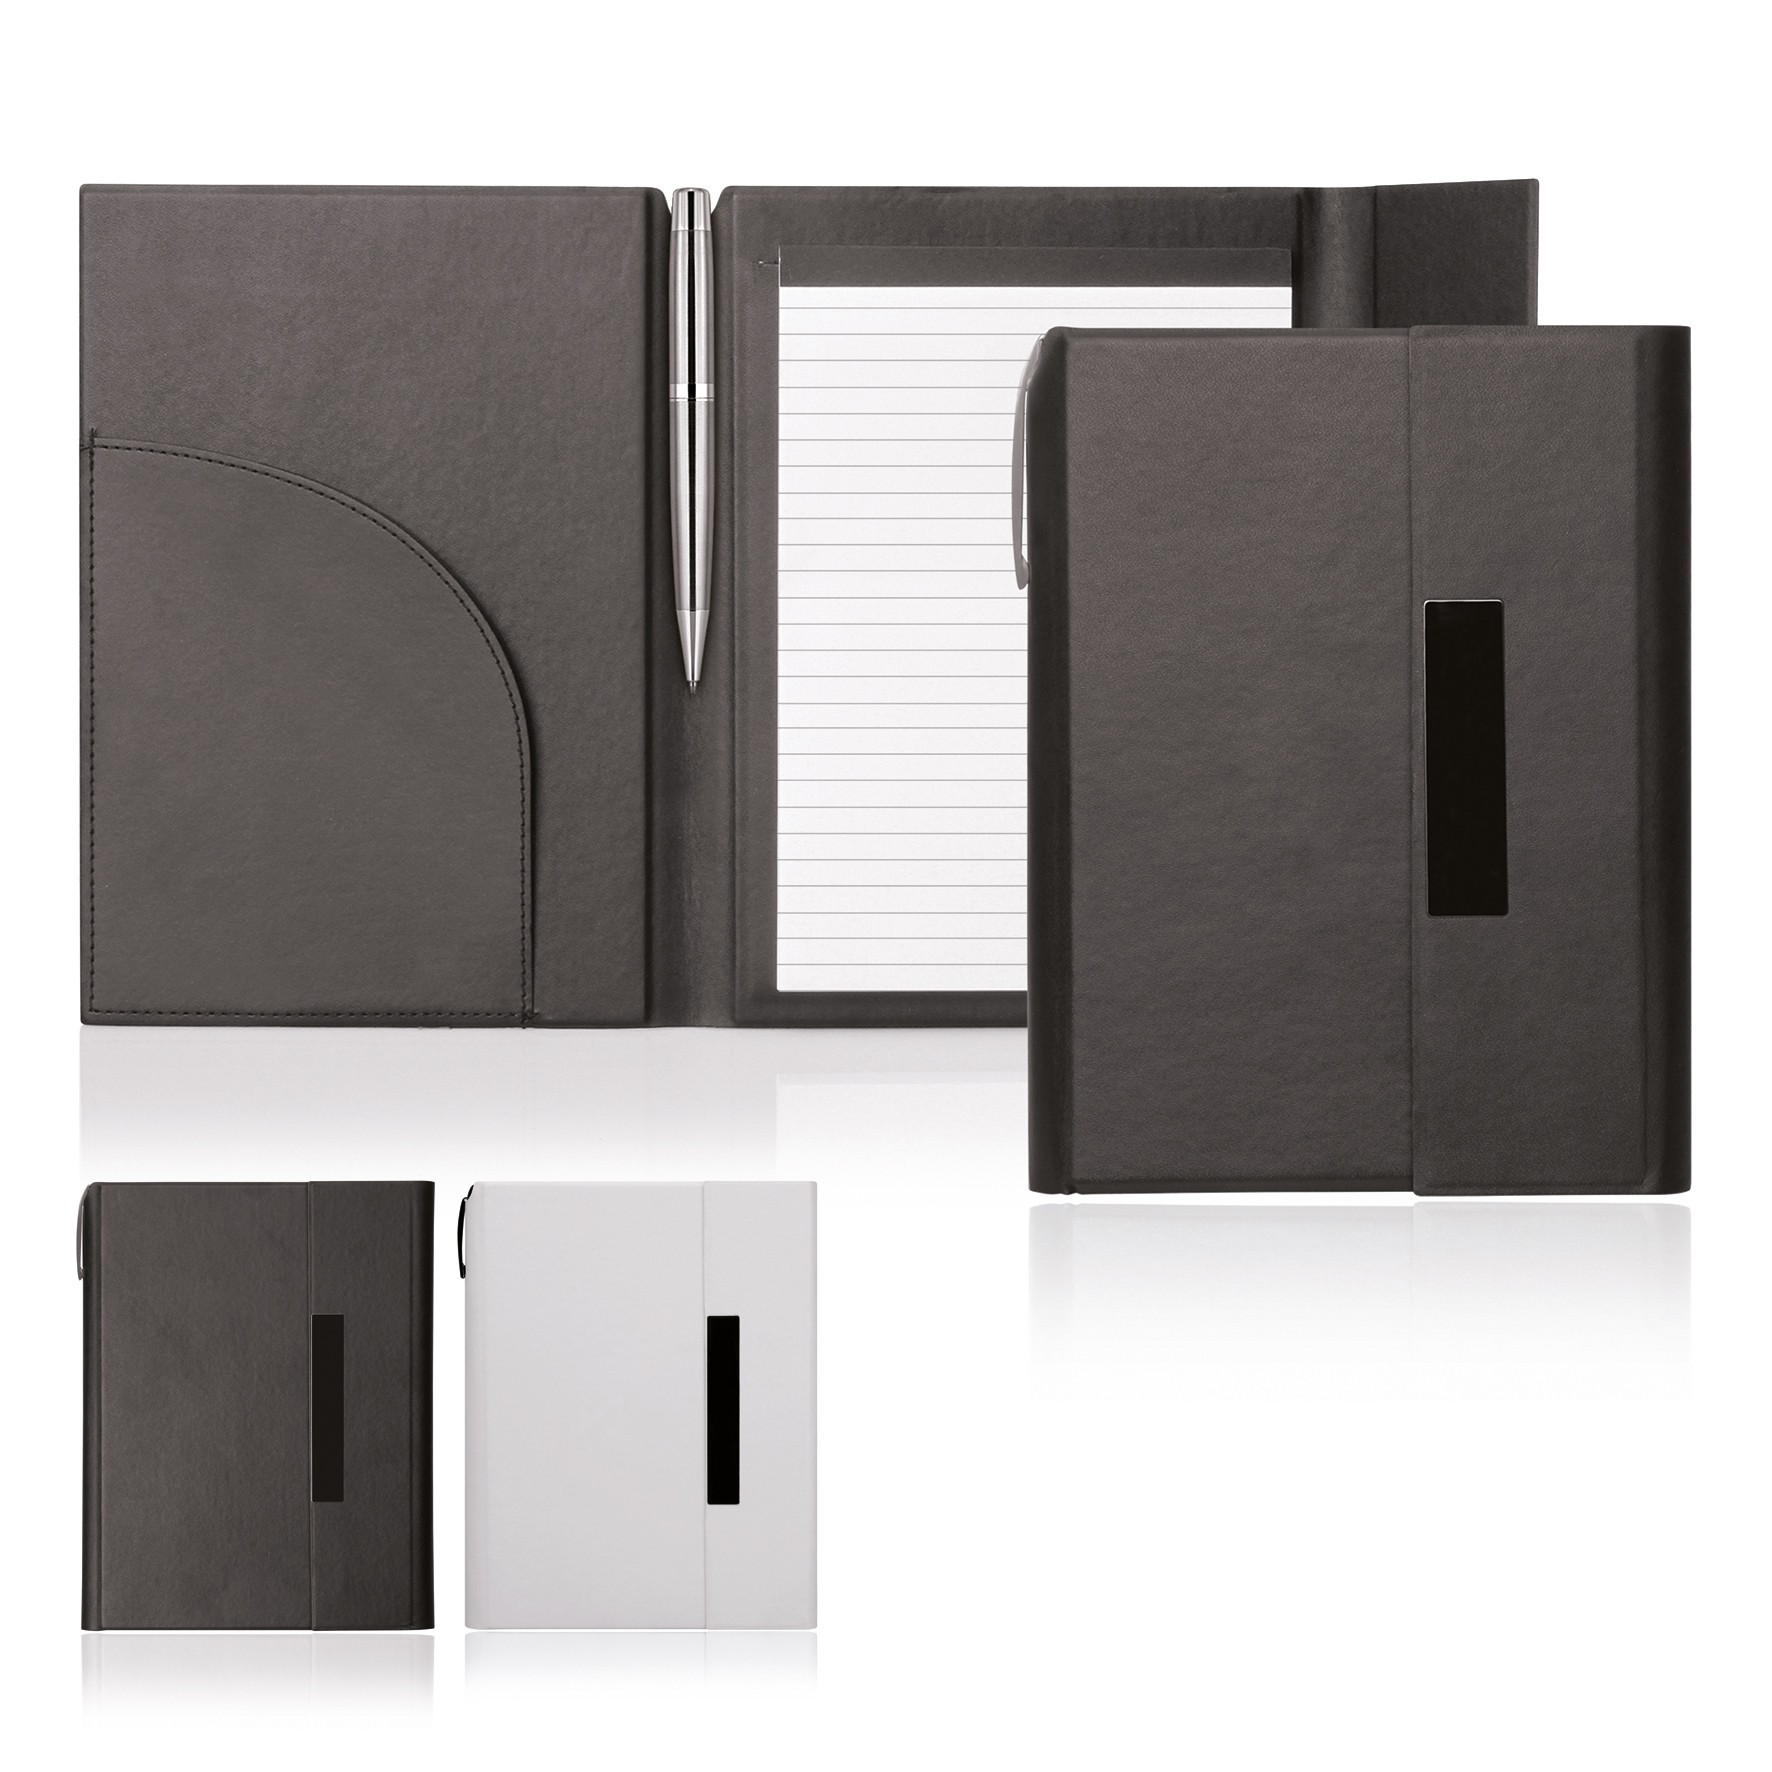 Notepad A5 Folder Magnetic Closure Elegance